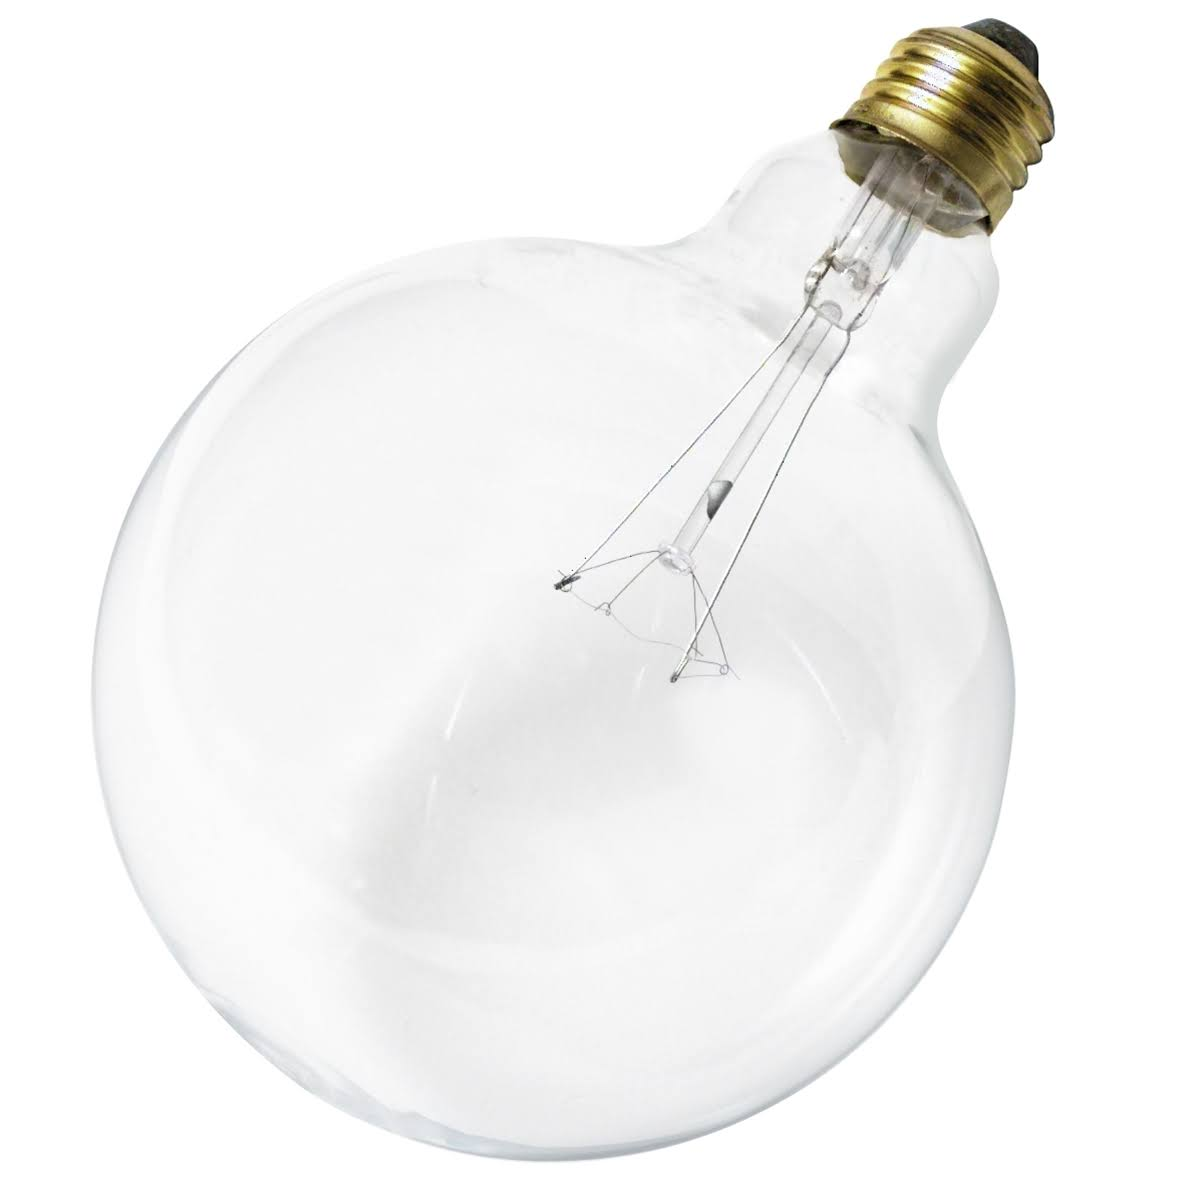 Satco S3012 Medium Base Light Bulb - Clear, 120V, 60W